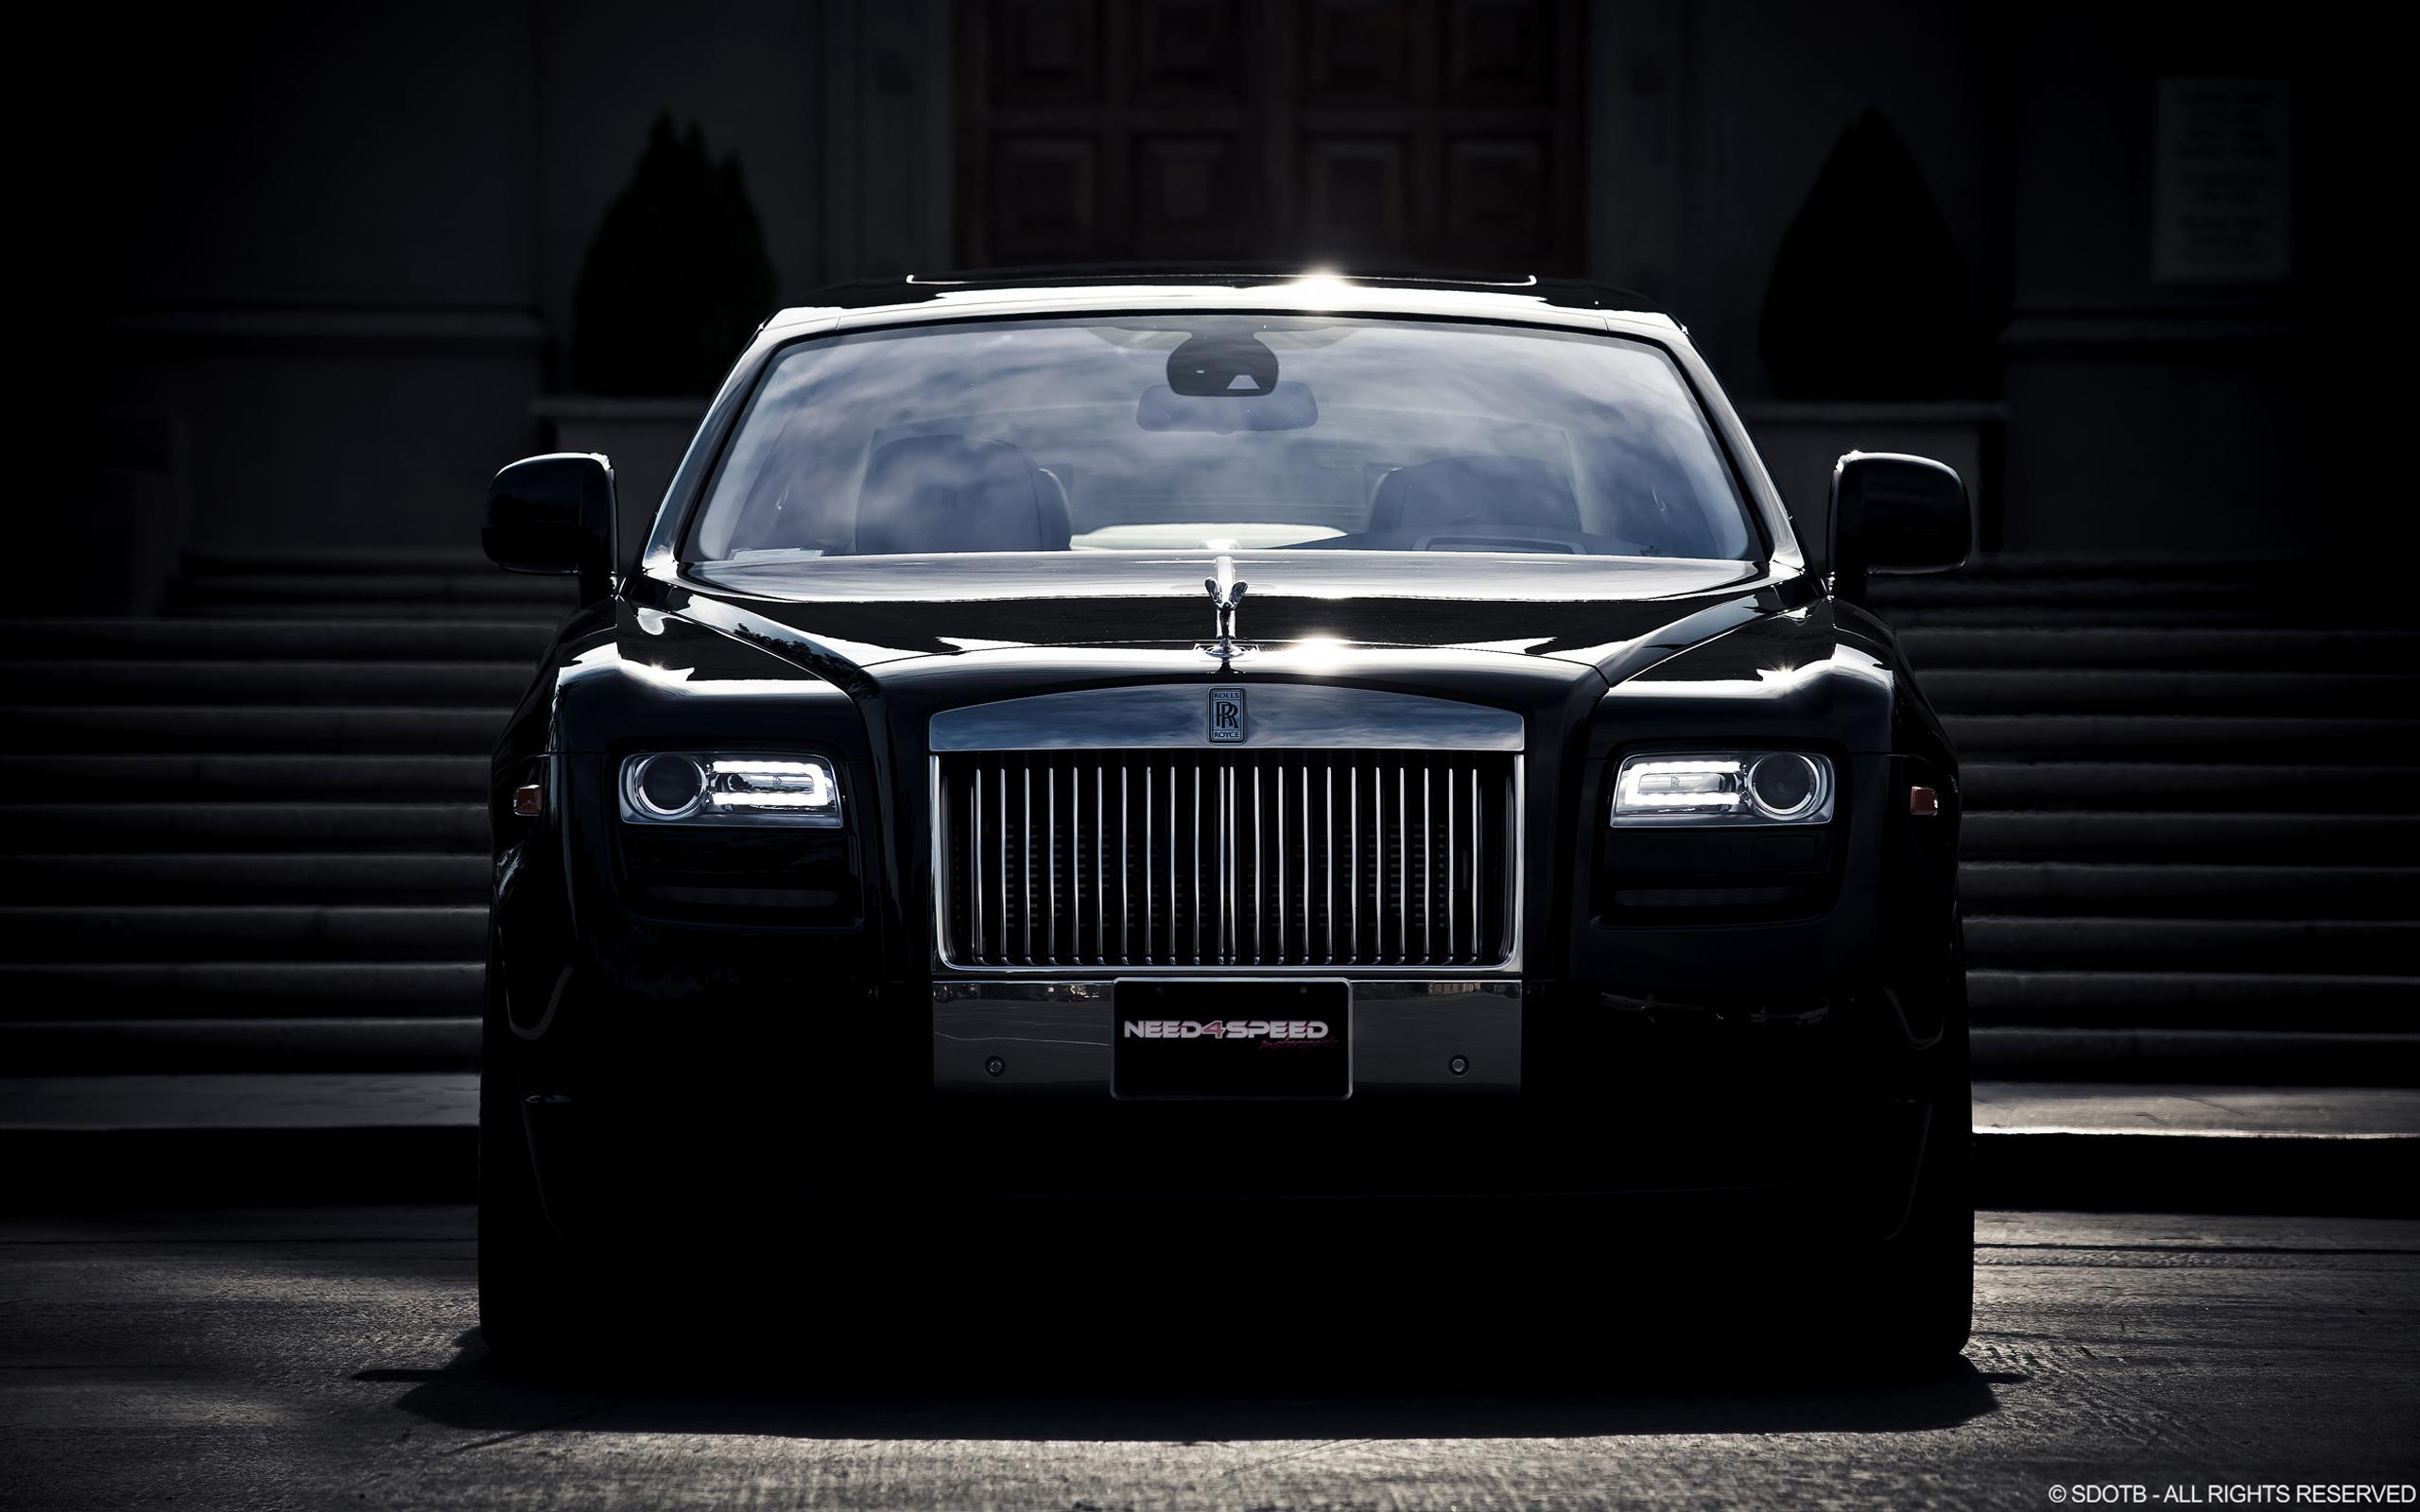 rolls royce ghostneed4speed motorsports wallpaper | hd car